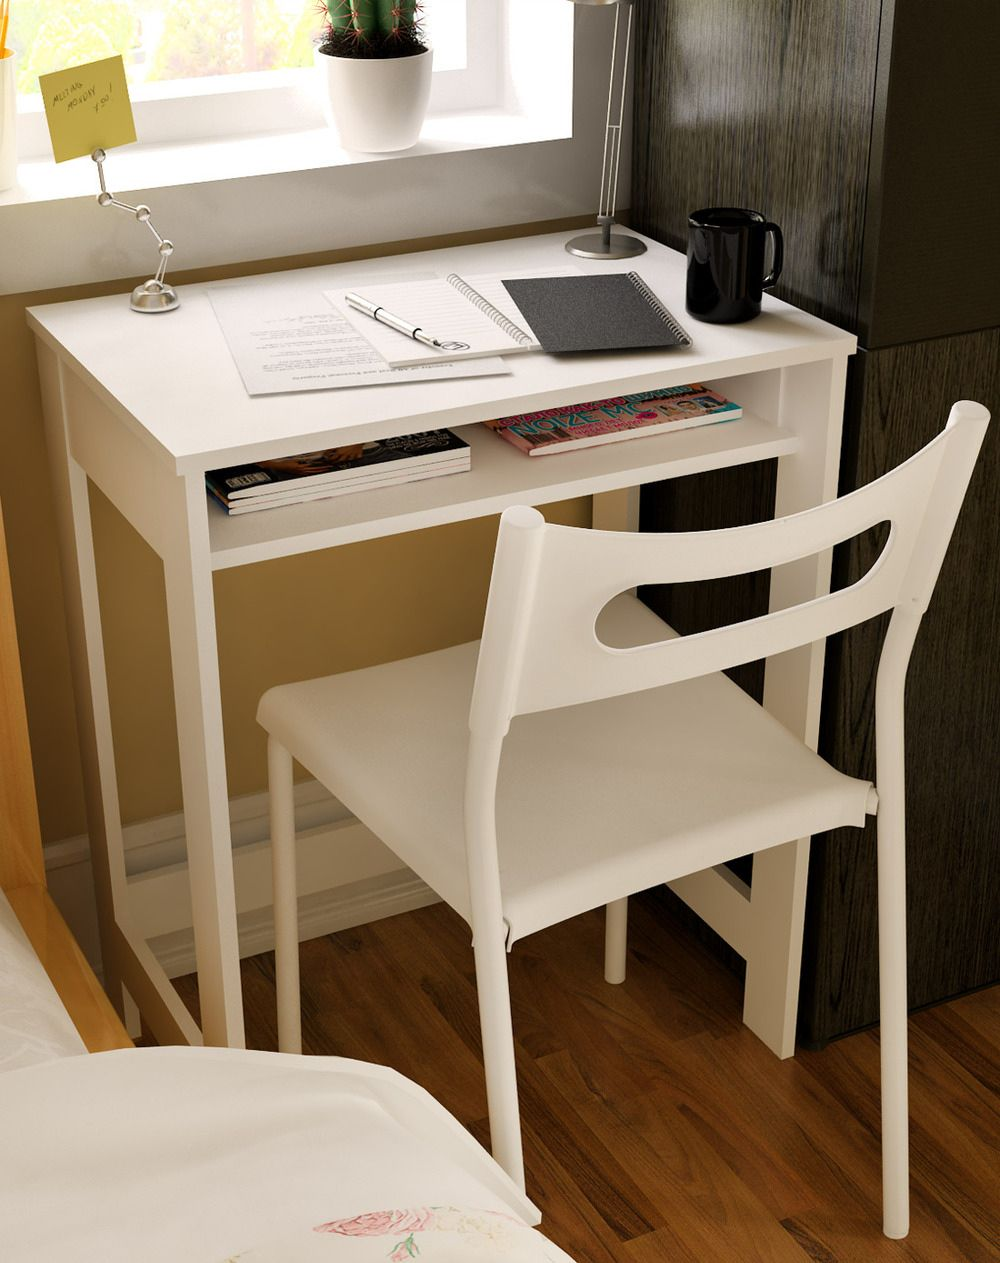 Small Student Desk Ikea Design Desk Ideas Check More At Http Www Gameintown Com Small Student D Small Study Desk Desks For Small Spaces Study Table Designs